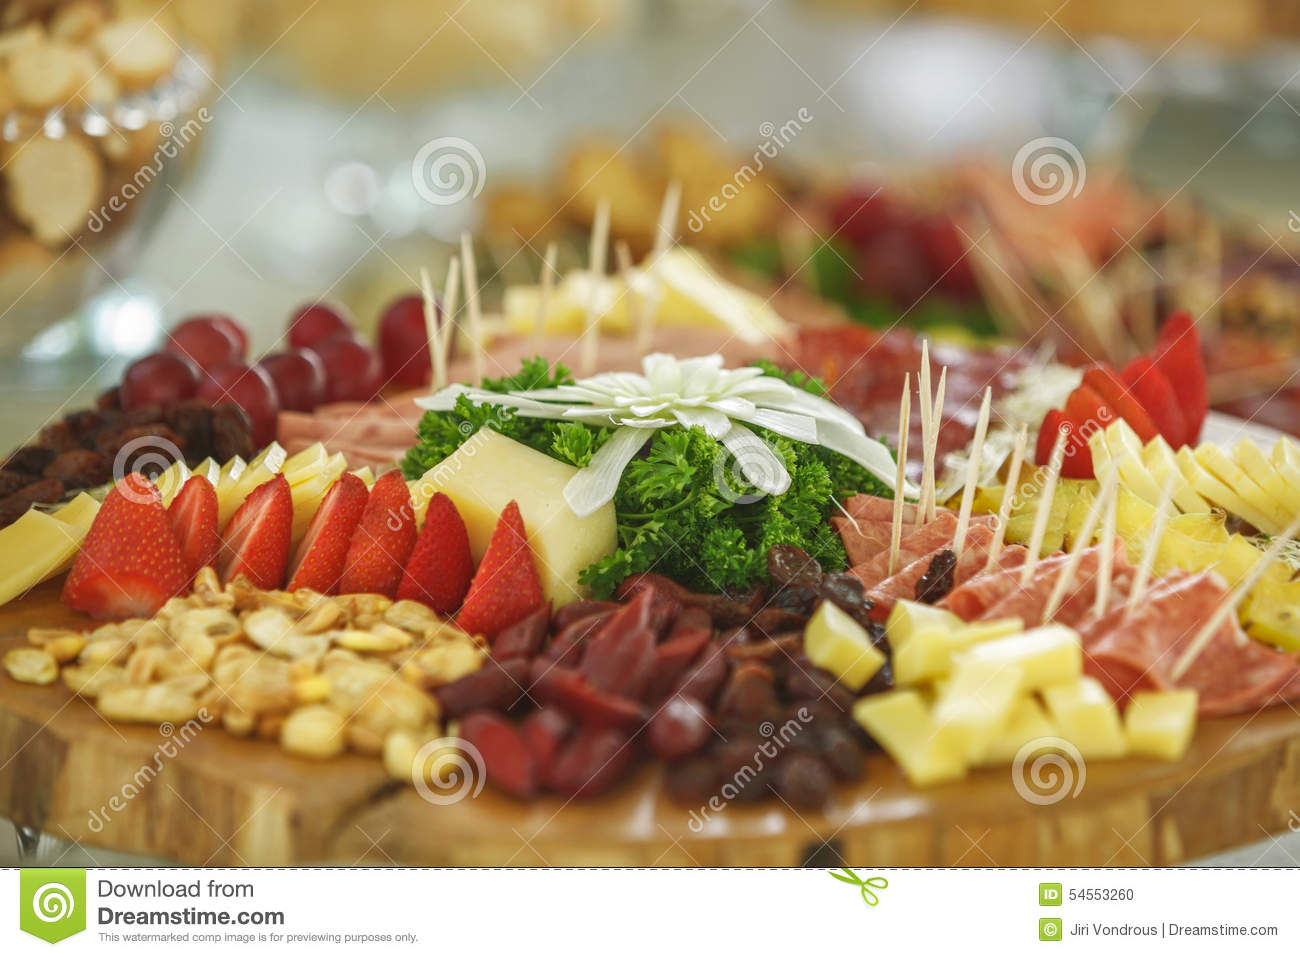 Catering Service With Various Fruits And Vegetables Stock Photo